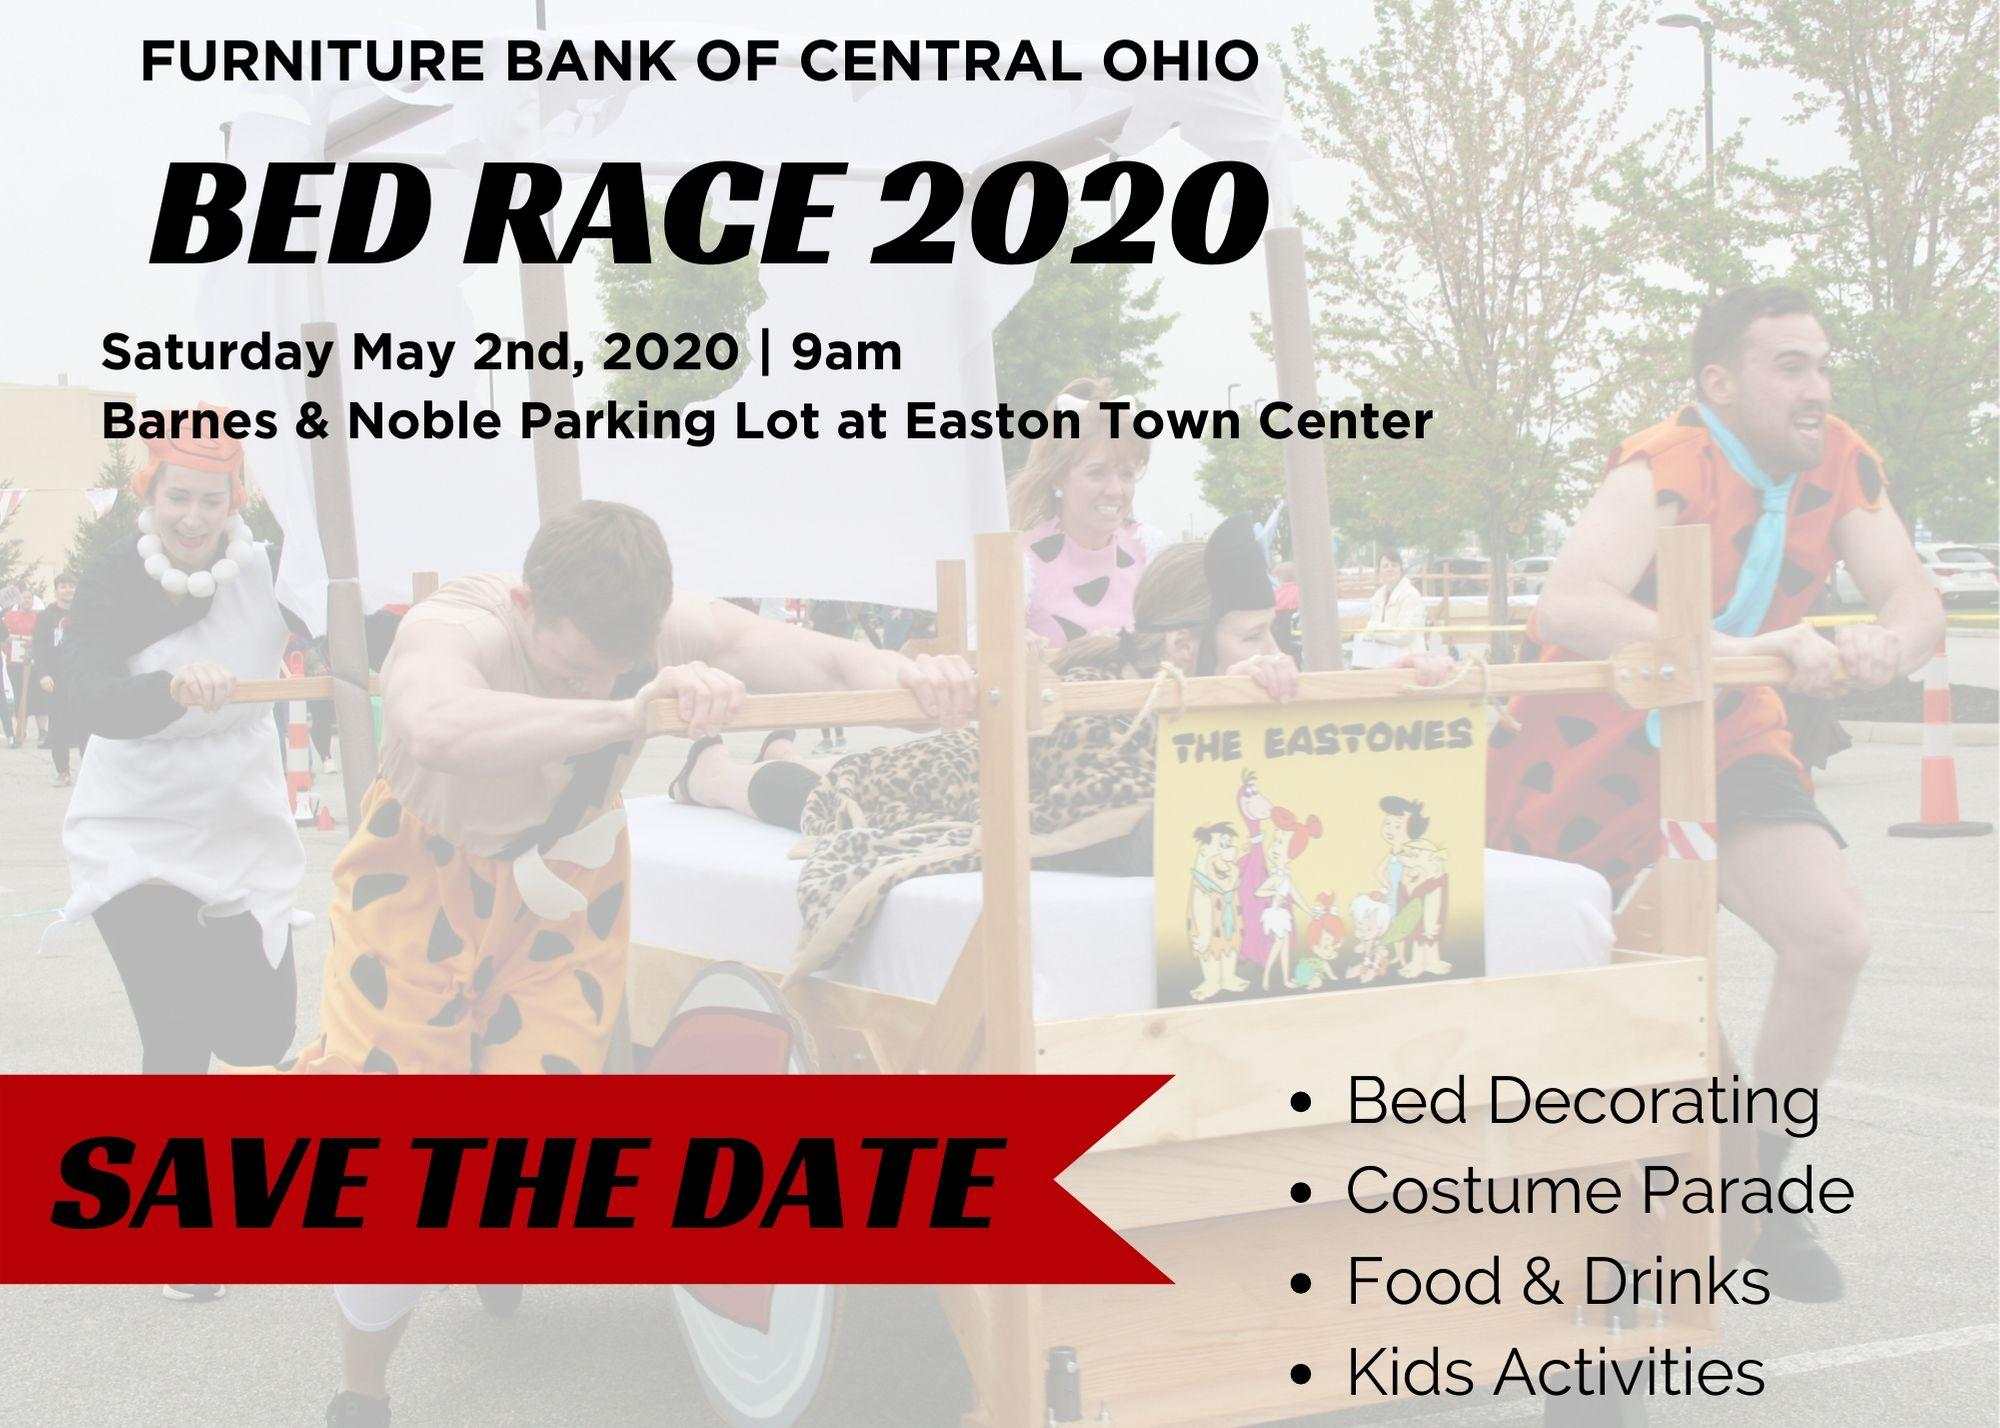 Columbus Ohio Events 2020.2020 Furniture Bank Bed Race Columbus 2019 Furniture Bank Of